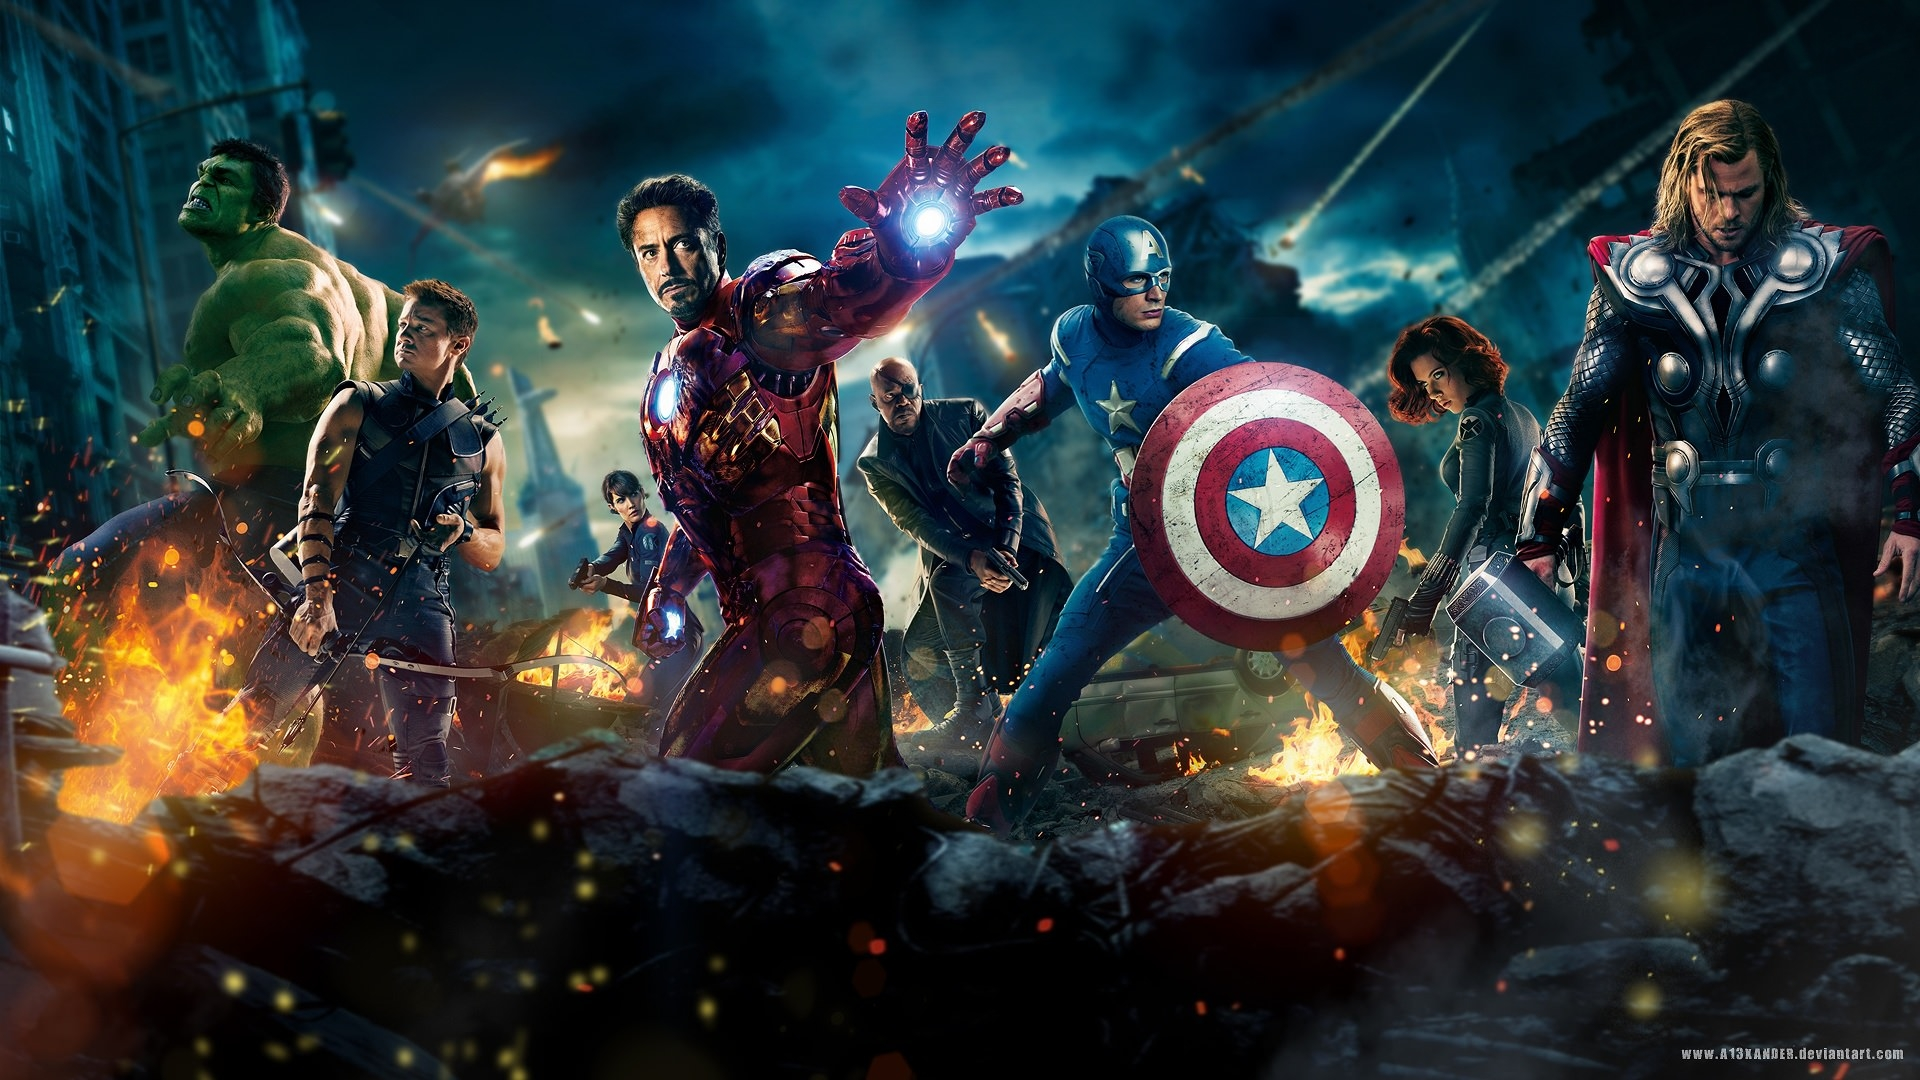 15 best hd superhero movie wallpapersfreecreatives avengers wallpapers voltagebd Choice Image